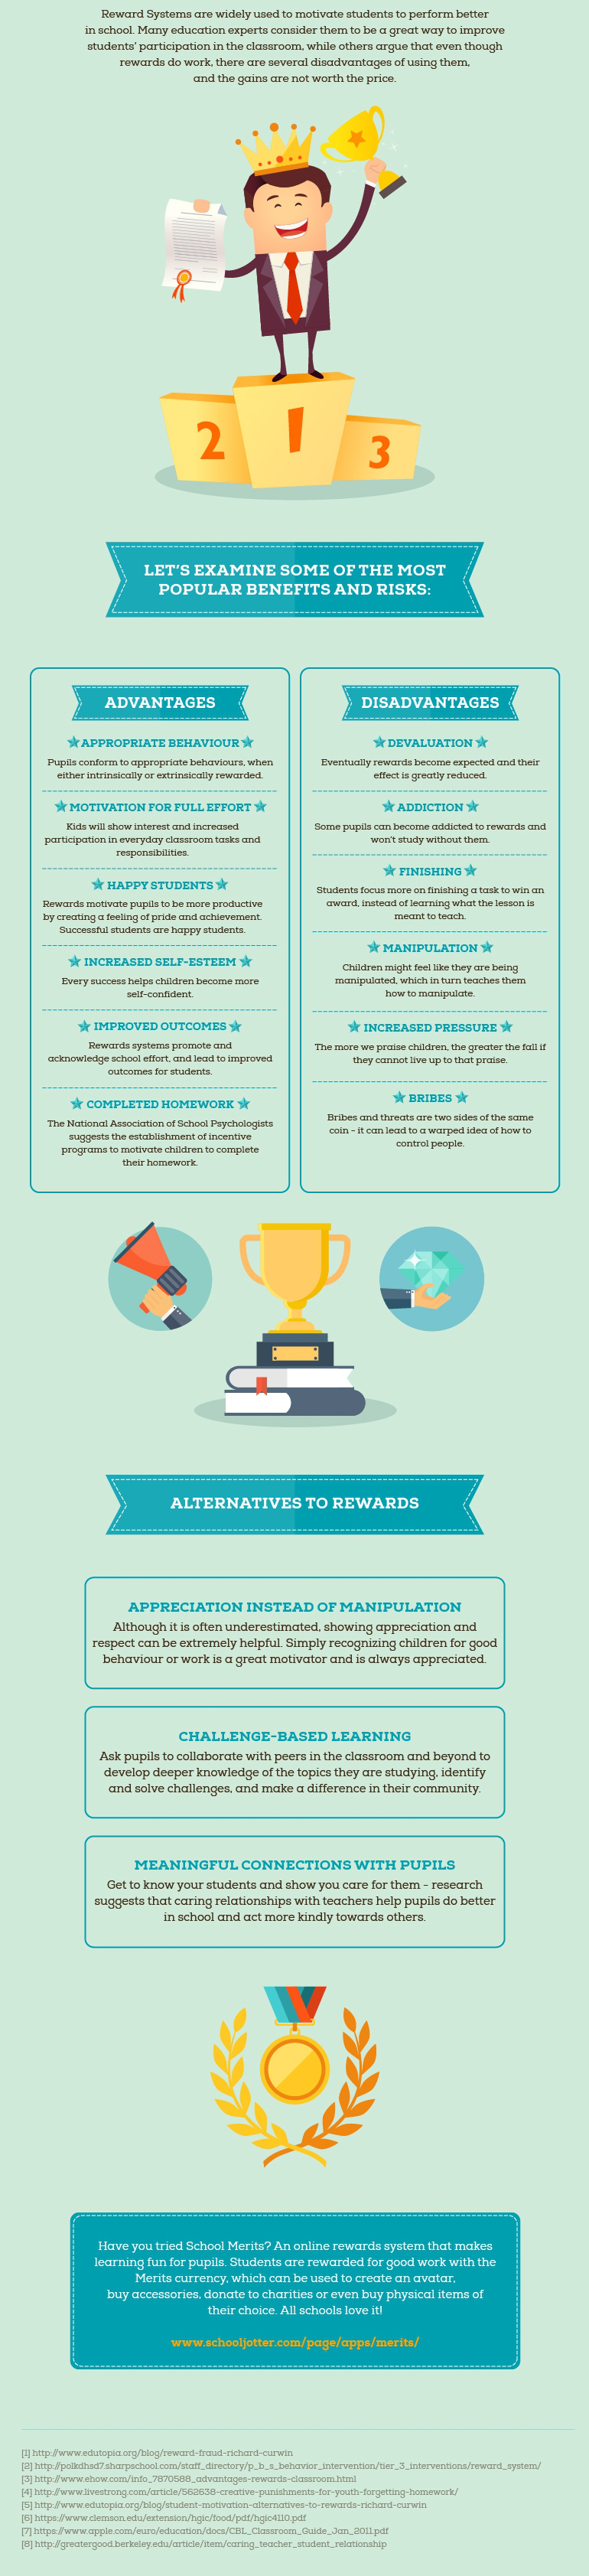 advantage and disadvantage of reward system The pros and cons of reward systems for primary schools infographic examines  and risks of reward systems  disadvantages of reward systems.